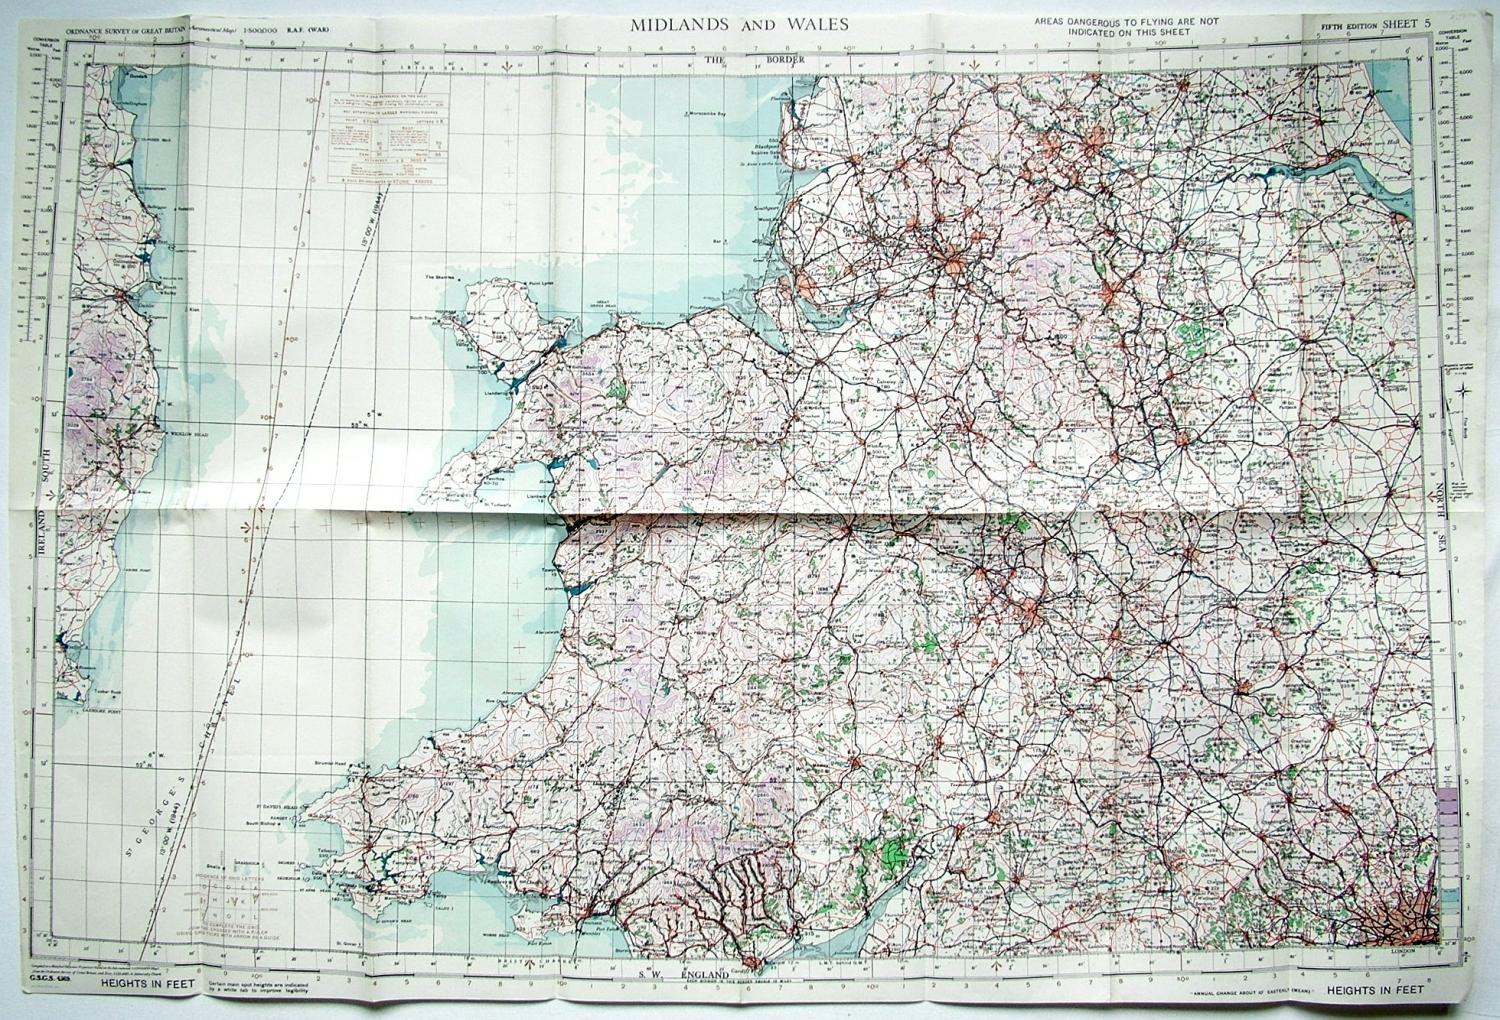 RAF Flight Map - Midlands & Wales